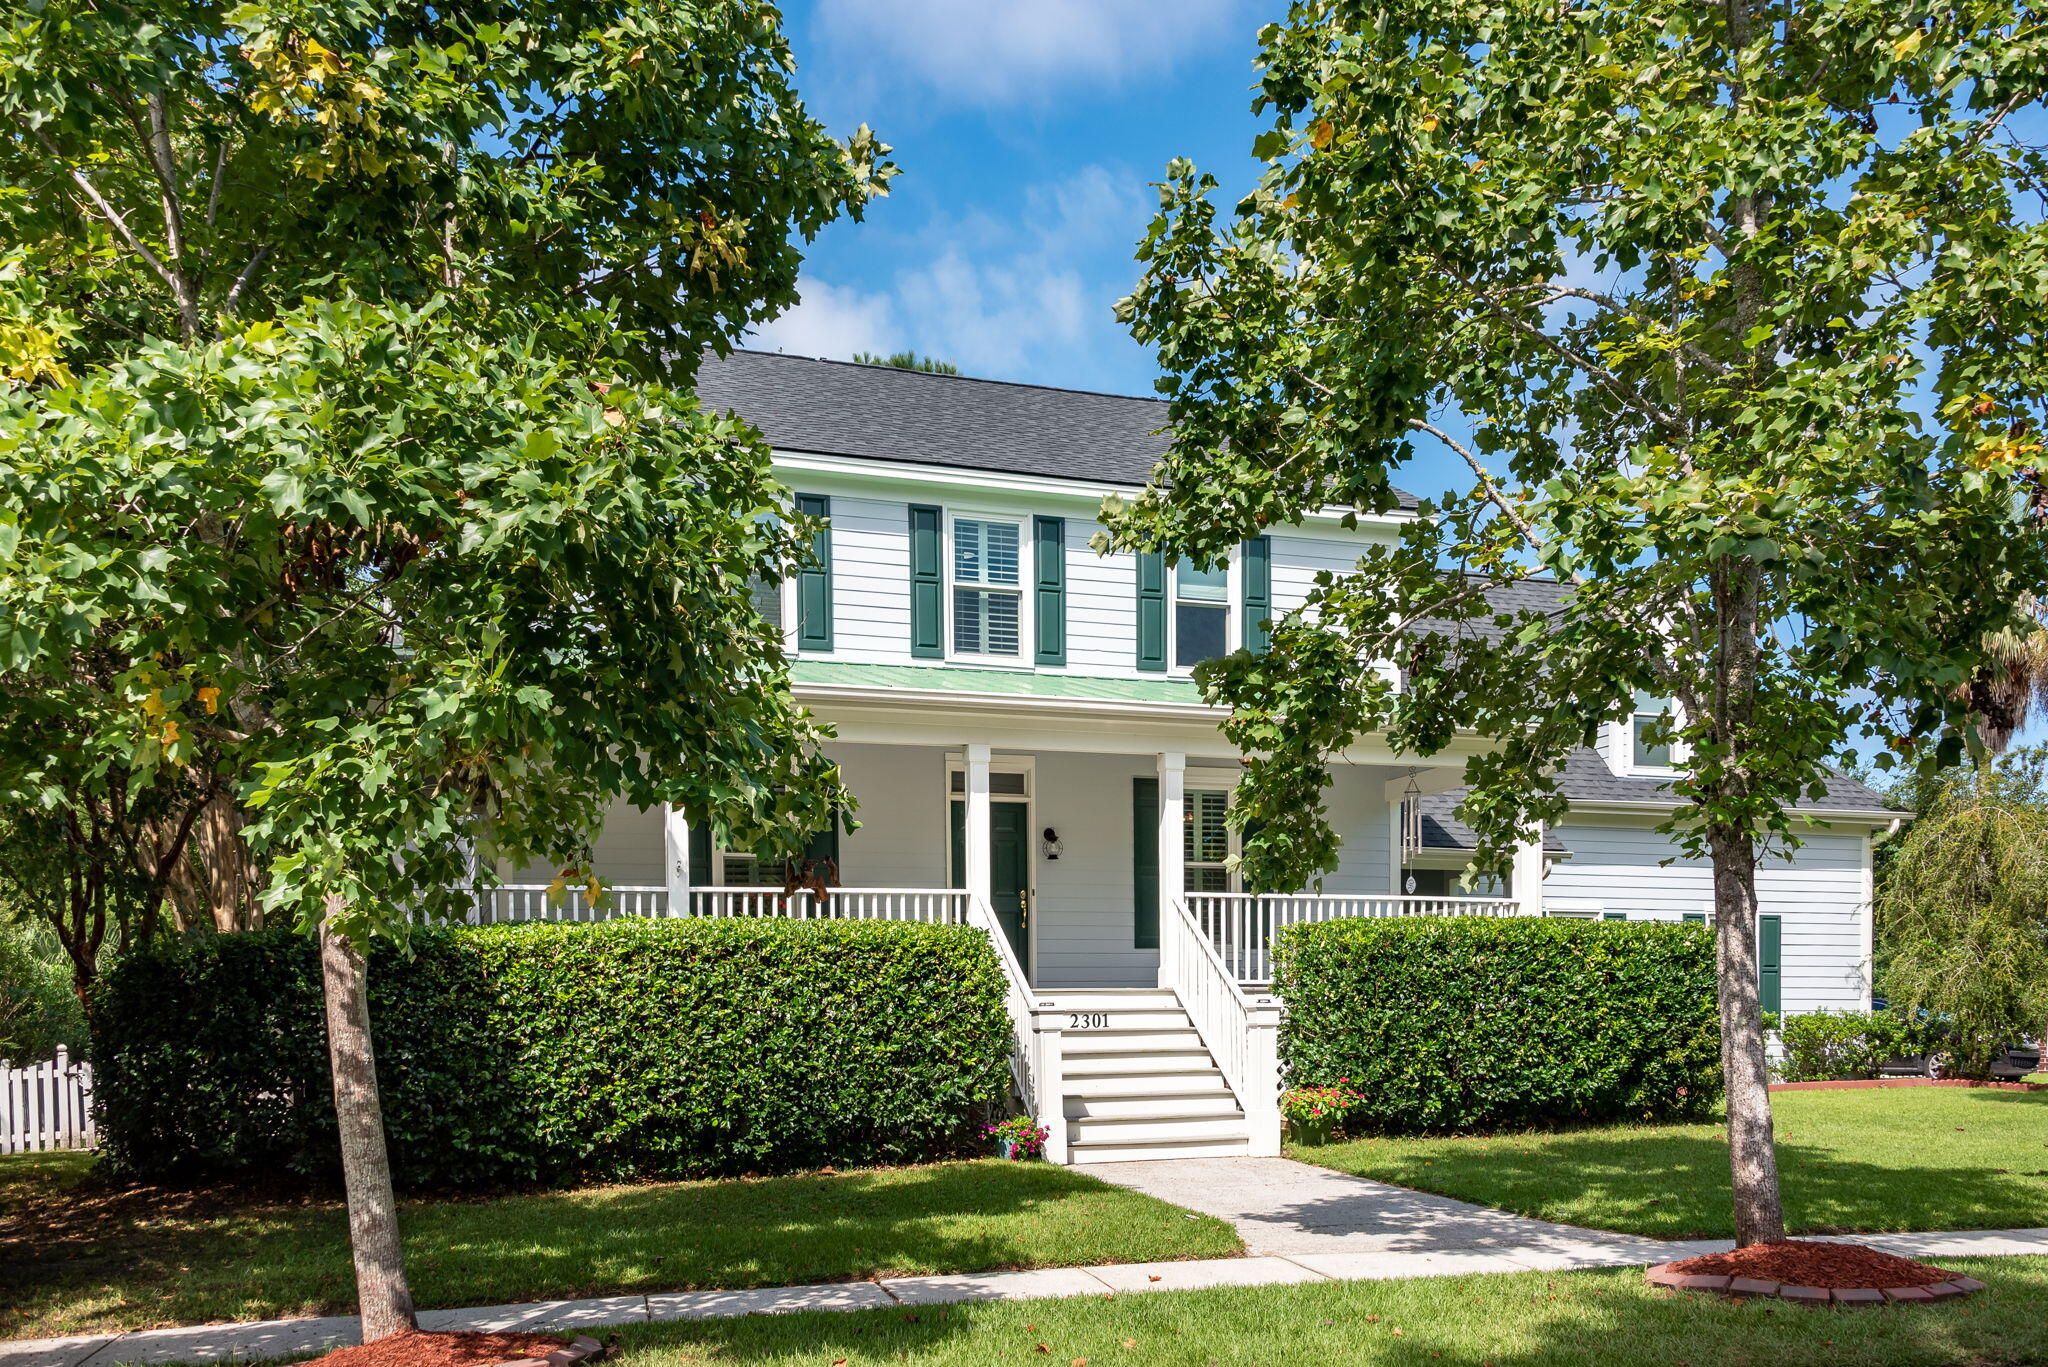 Rivertowne On The Wando Homes For Sale - 2301 Hartfords Bluff, Mount Pleasant, SC - 10